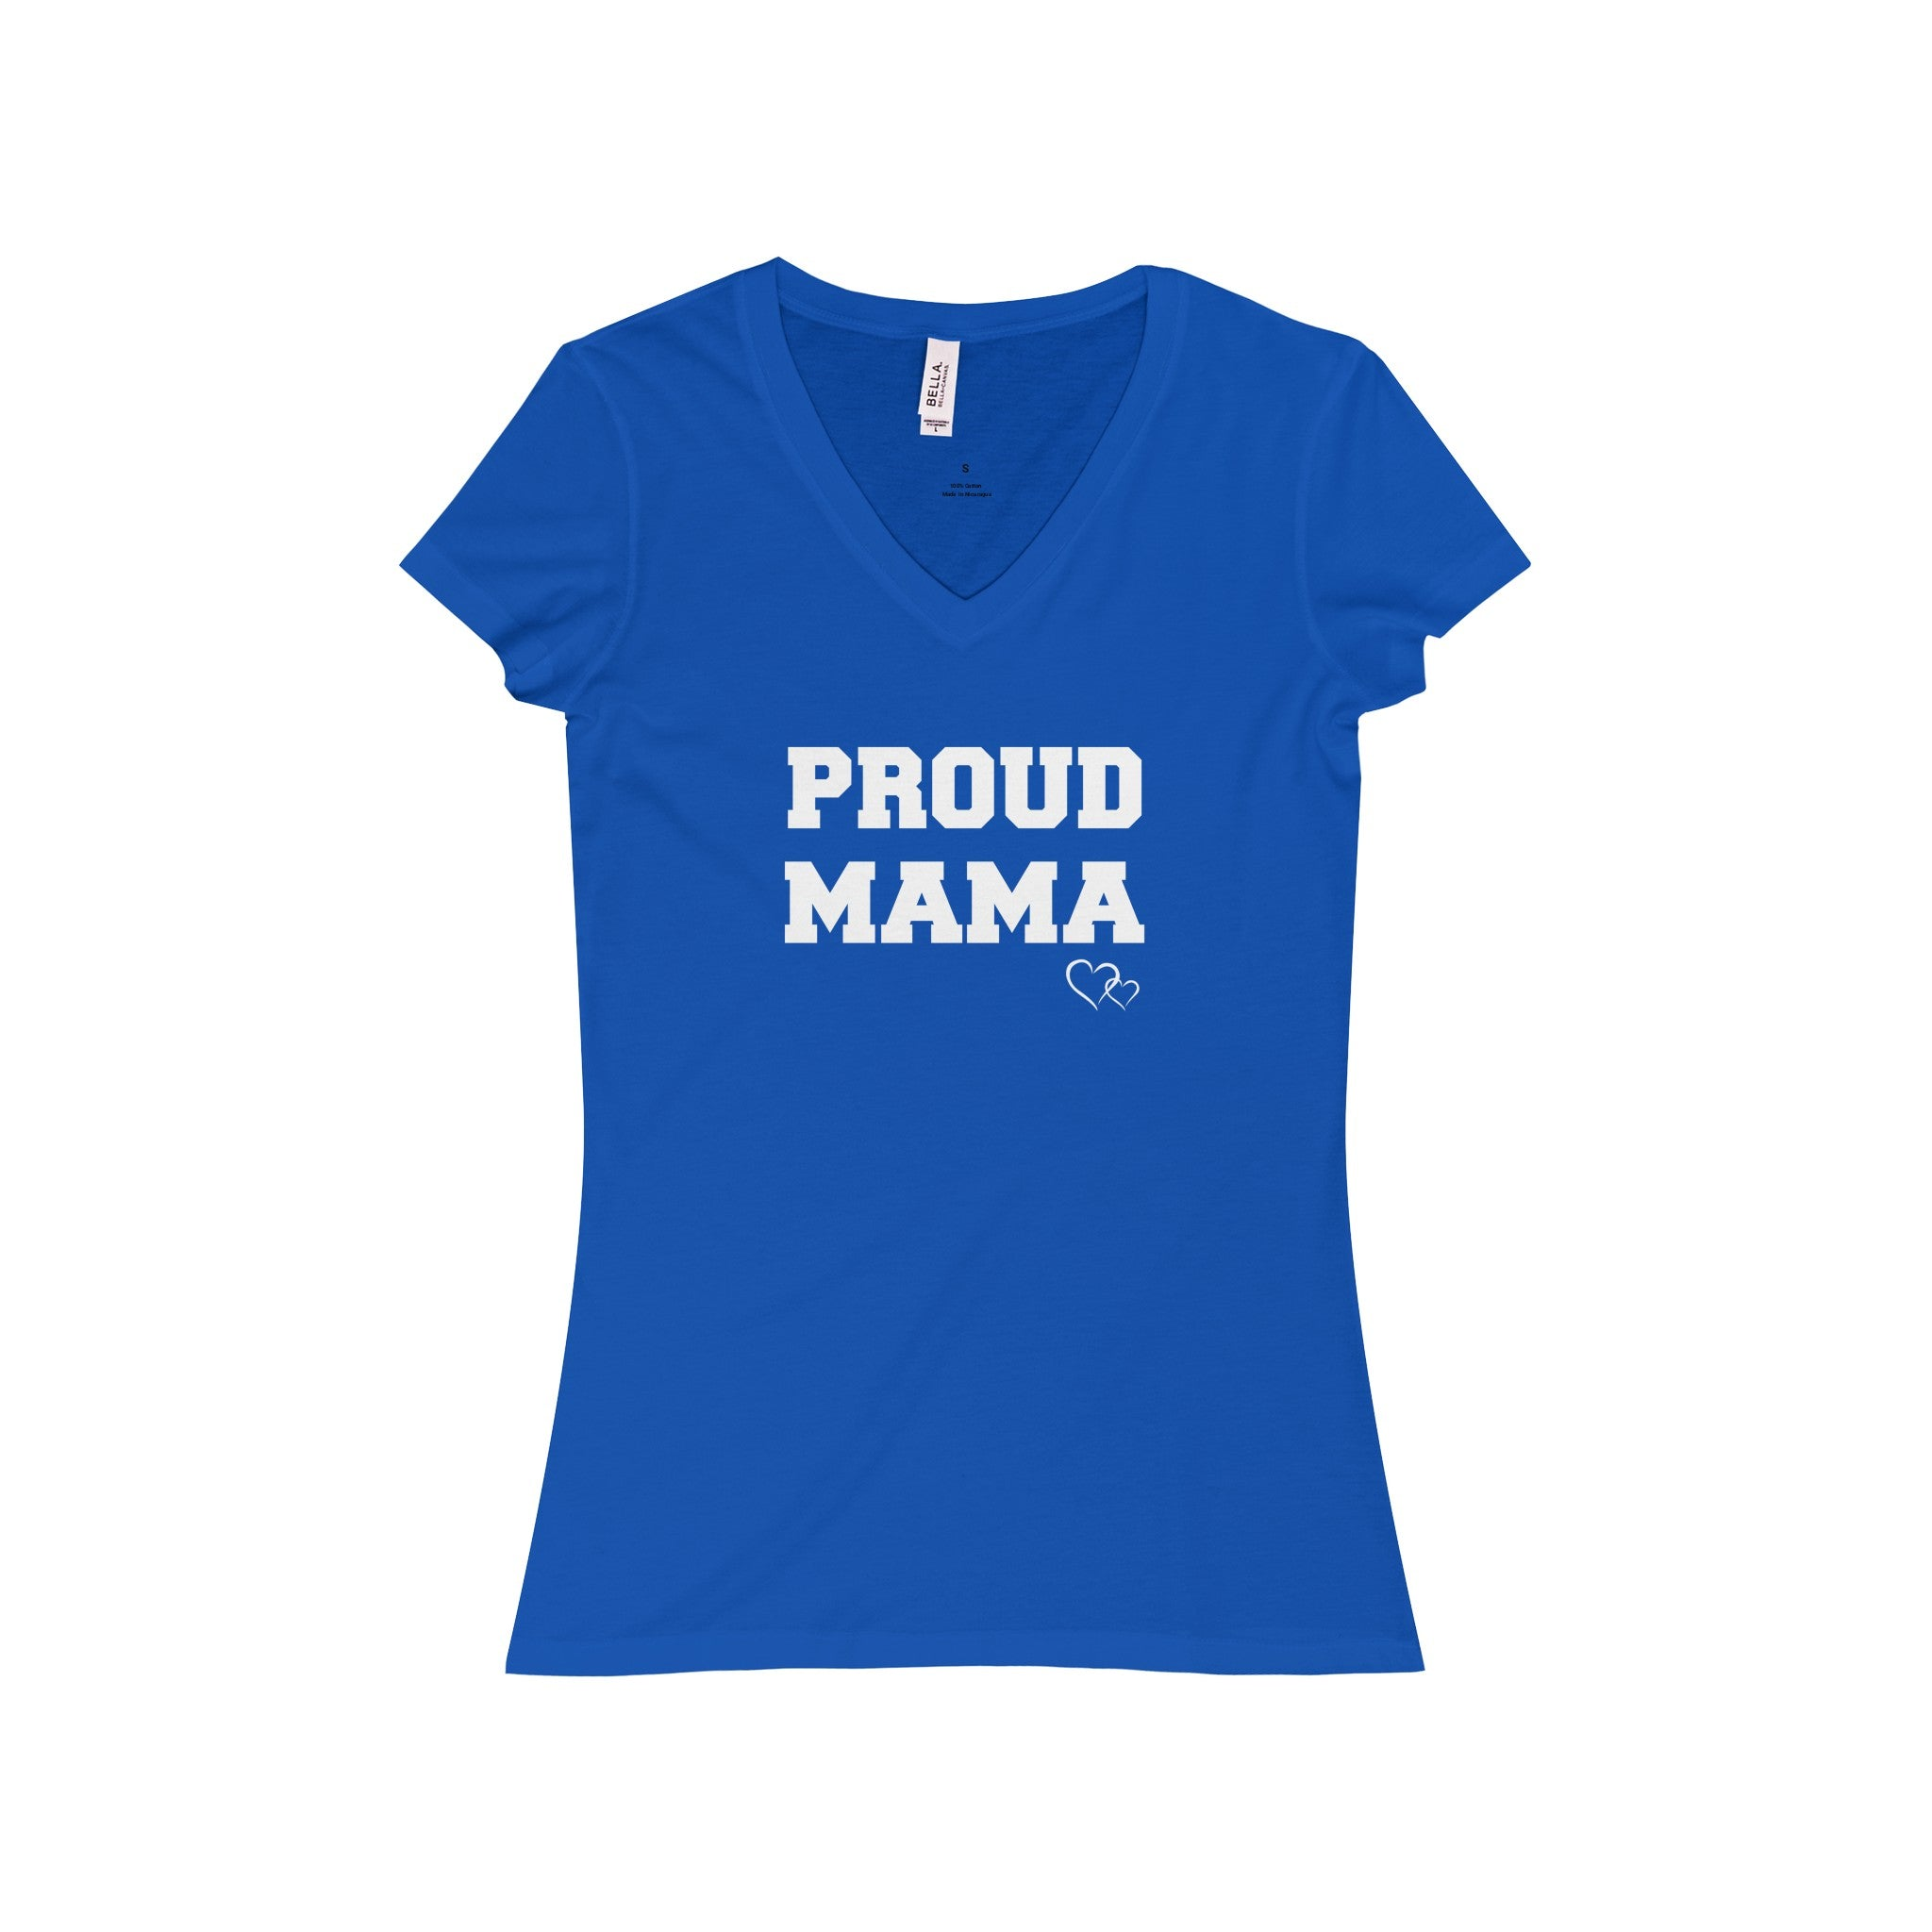 PROUD MAMA - Short Sleeve V